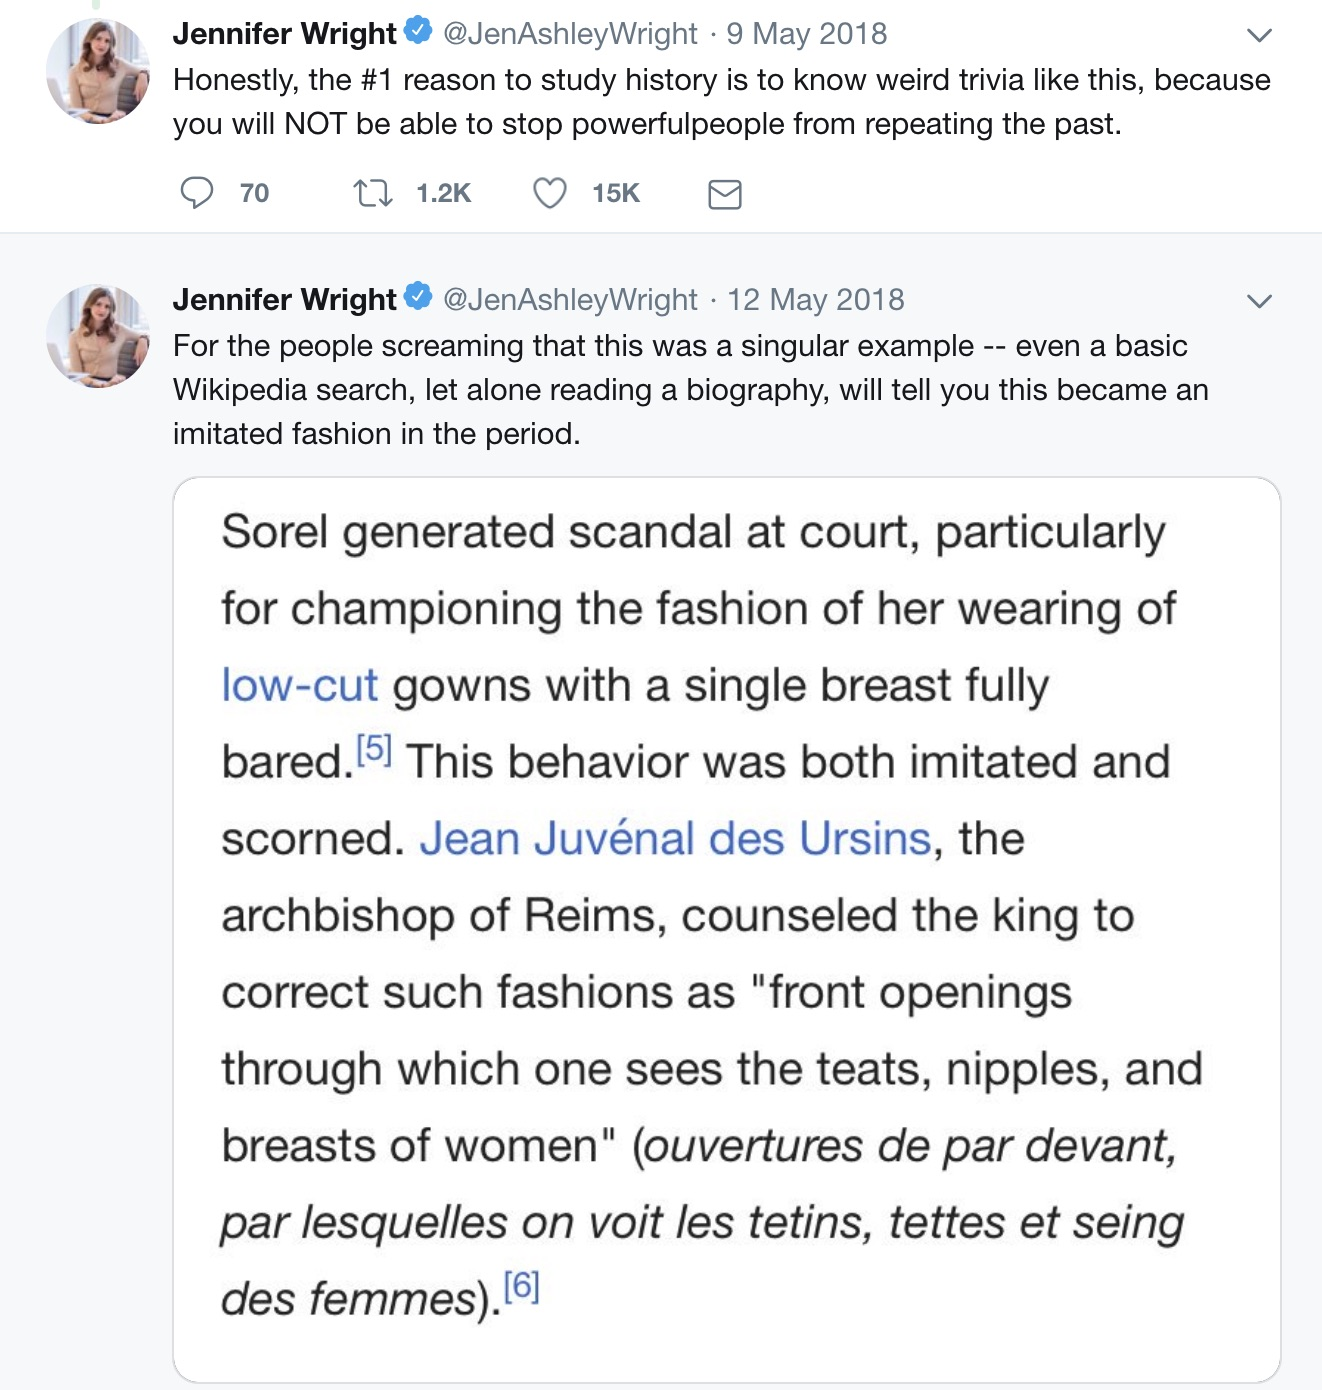 Jennifer_Wright_on_Twitter____Women_in_the_past_were_modest_and_had_more_respect_for_themselves___Here_s_Agnes_Sorel__who_had_her_gowns_tailored_to_expose_her_favorite_boob_in_the_1440-s